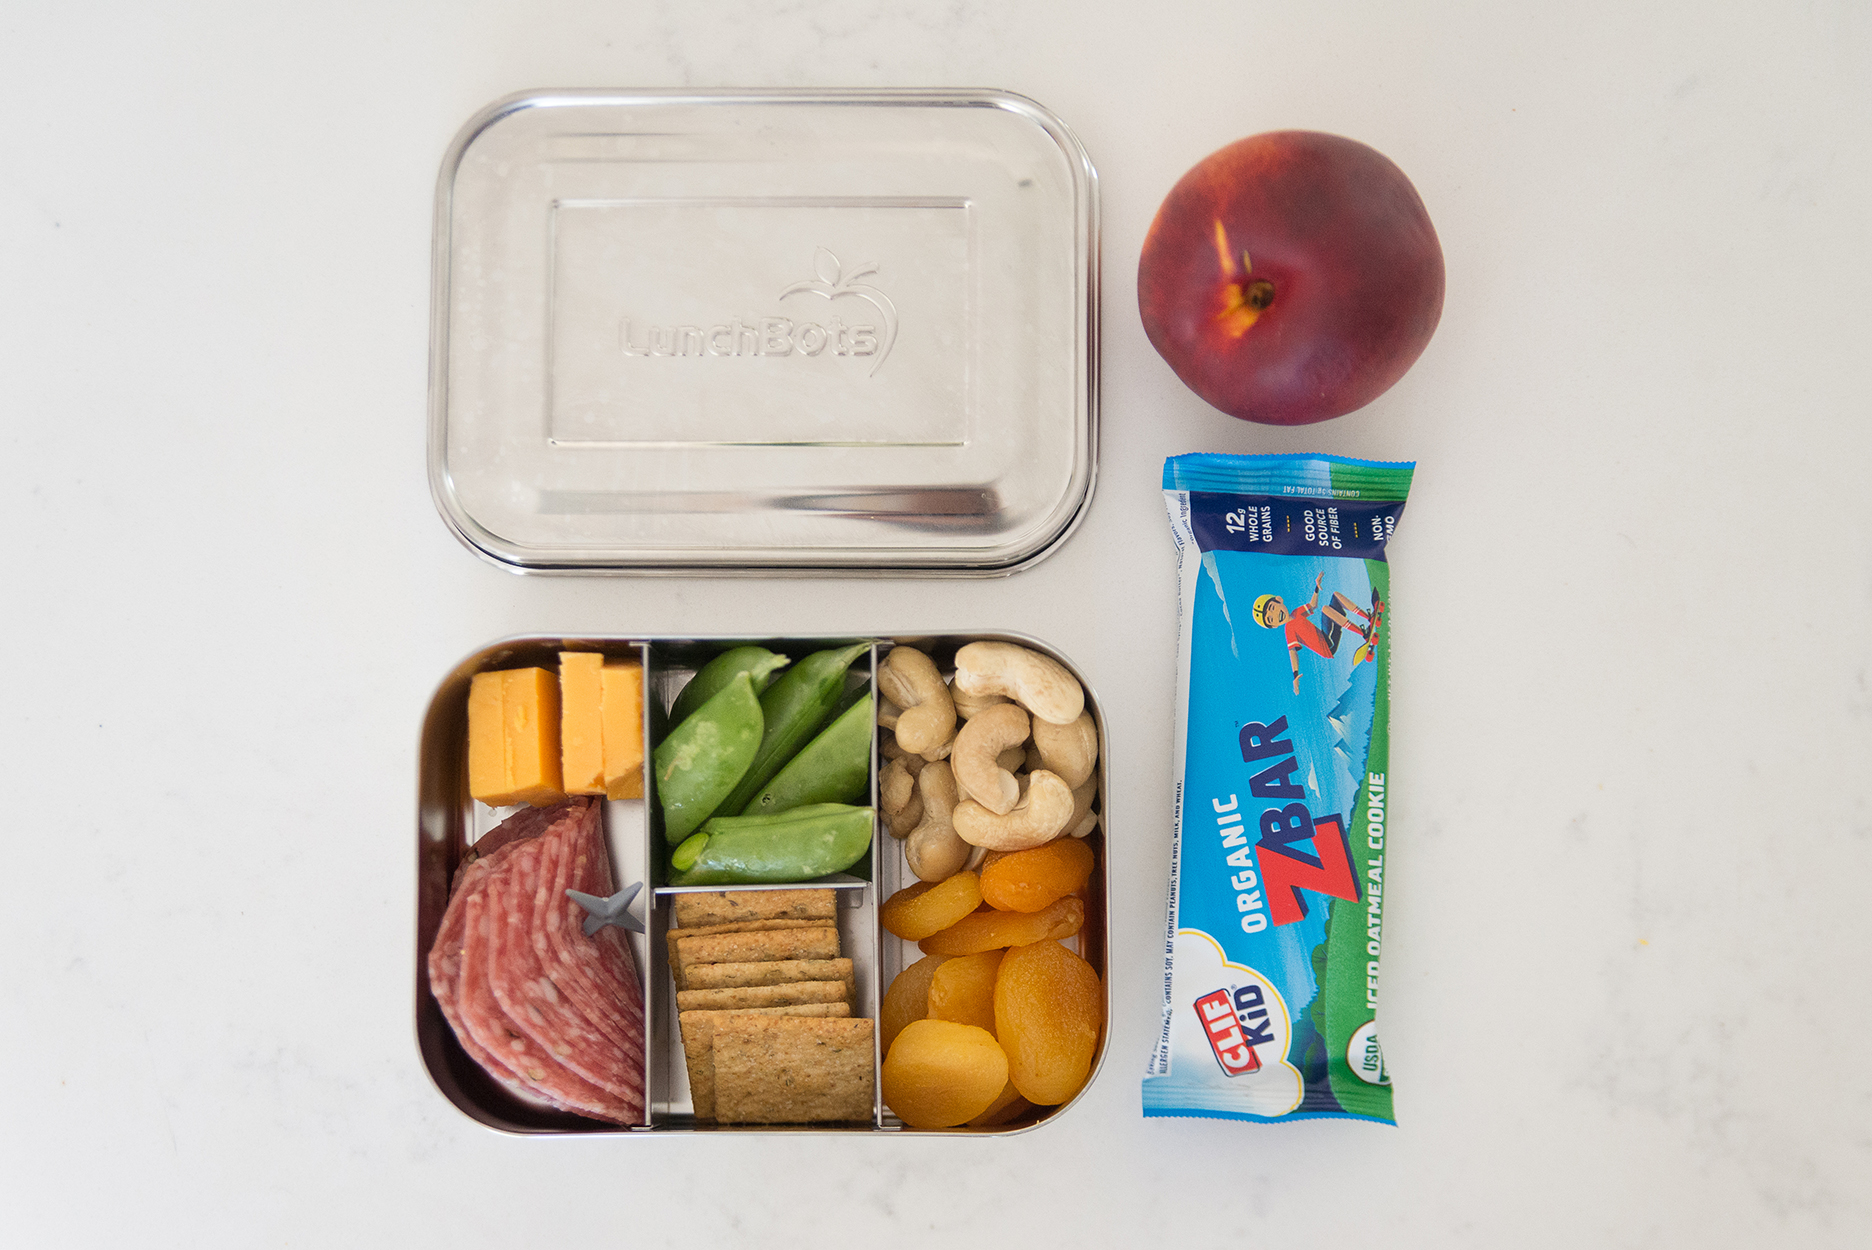 Stainless steel bento box kids lunch with a z par and peach